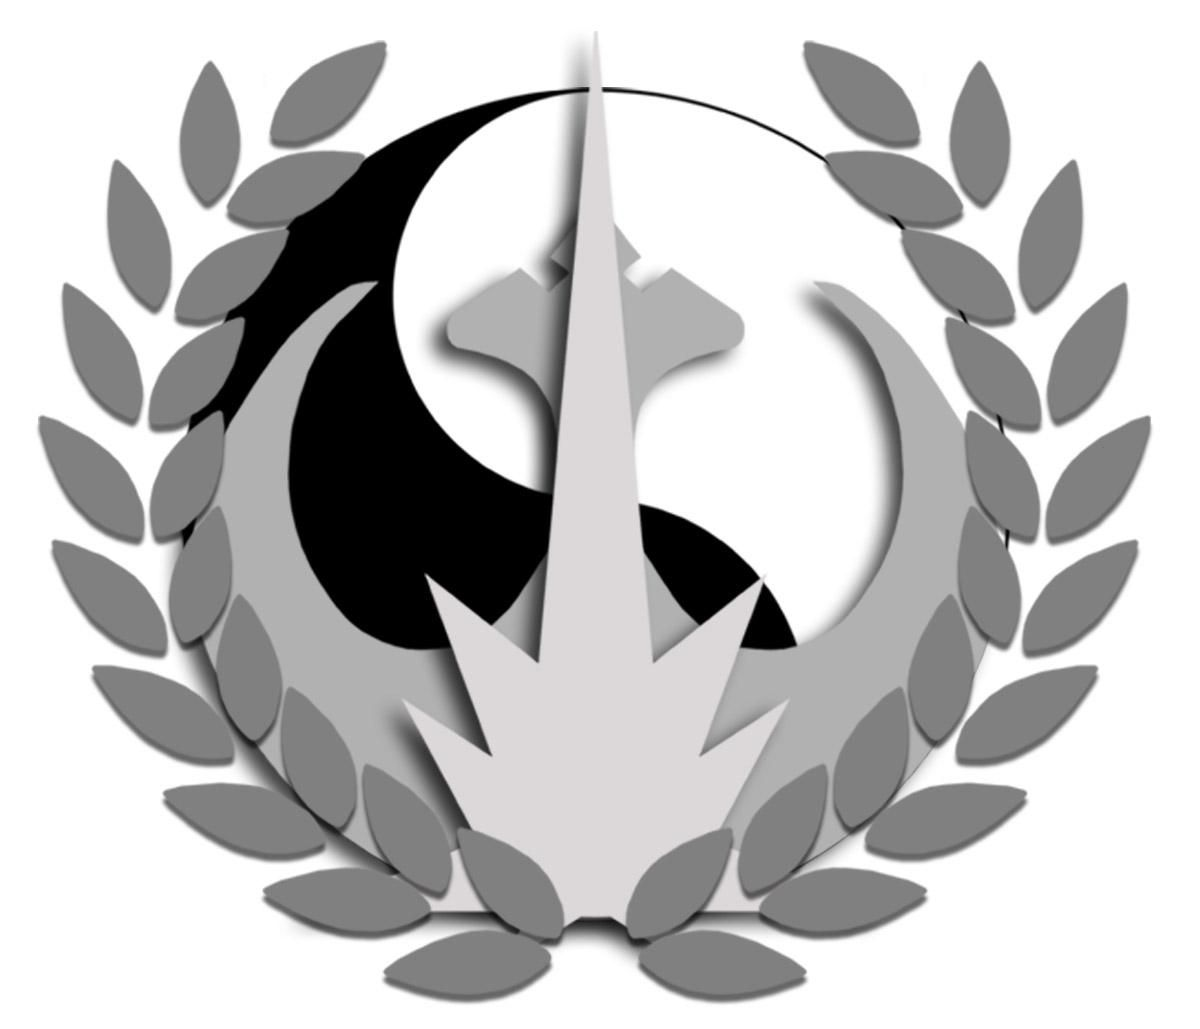 Ancient jedi order cod3530 star wars fanon fandom powered by ancient jedi order cod3530 biocorpaavc